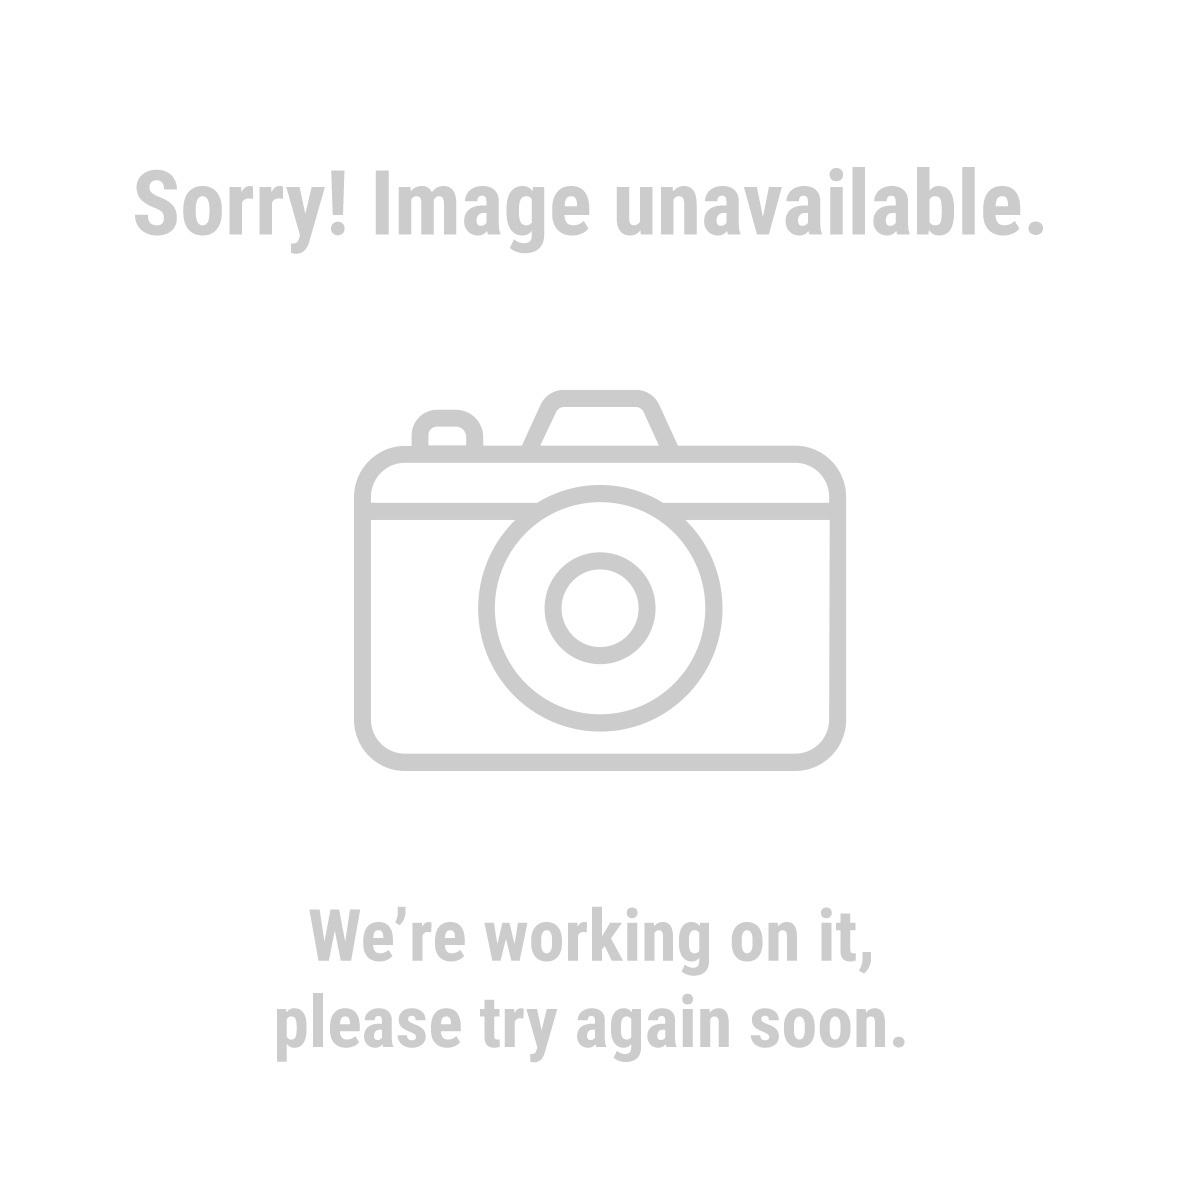 3M 67723 Lens Renewal Kit